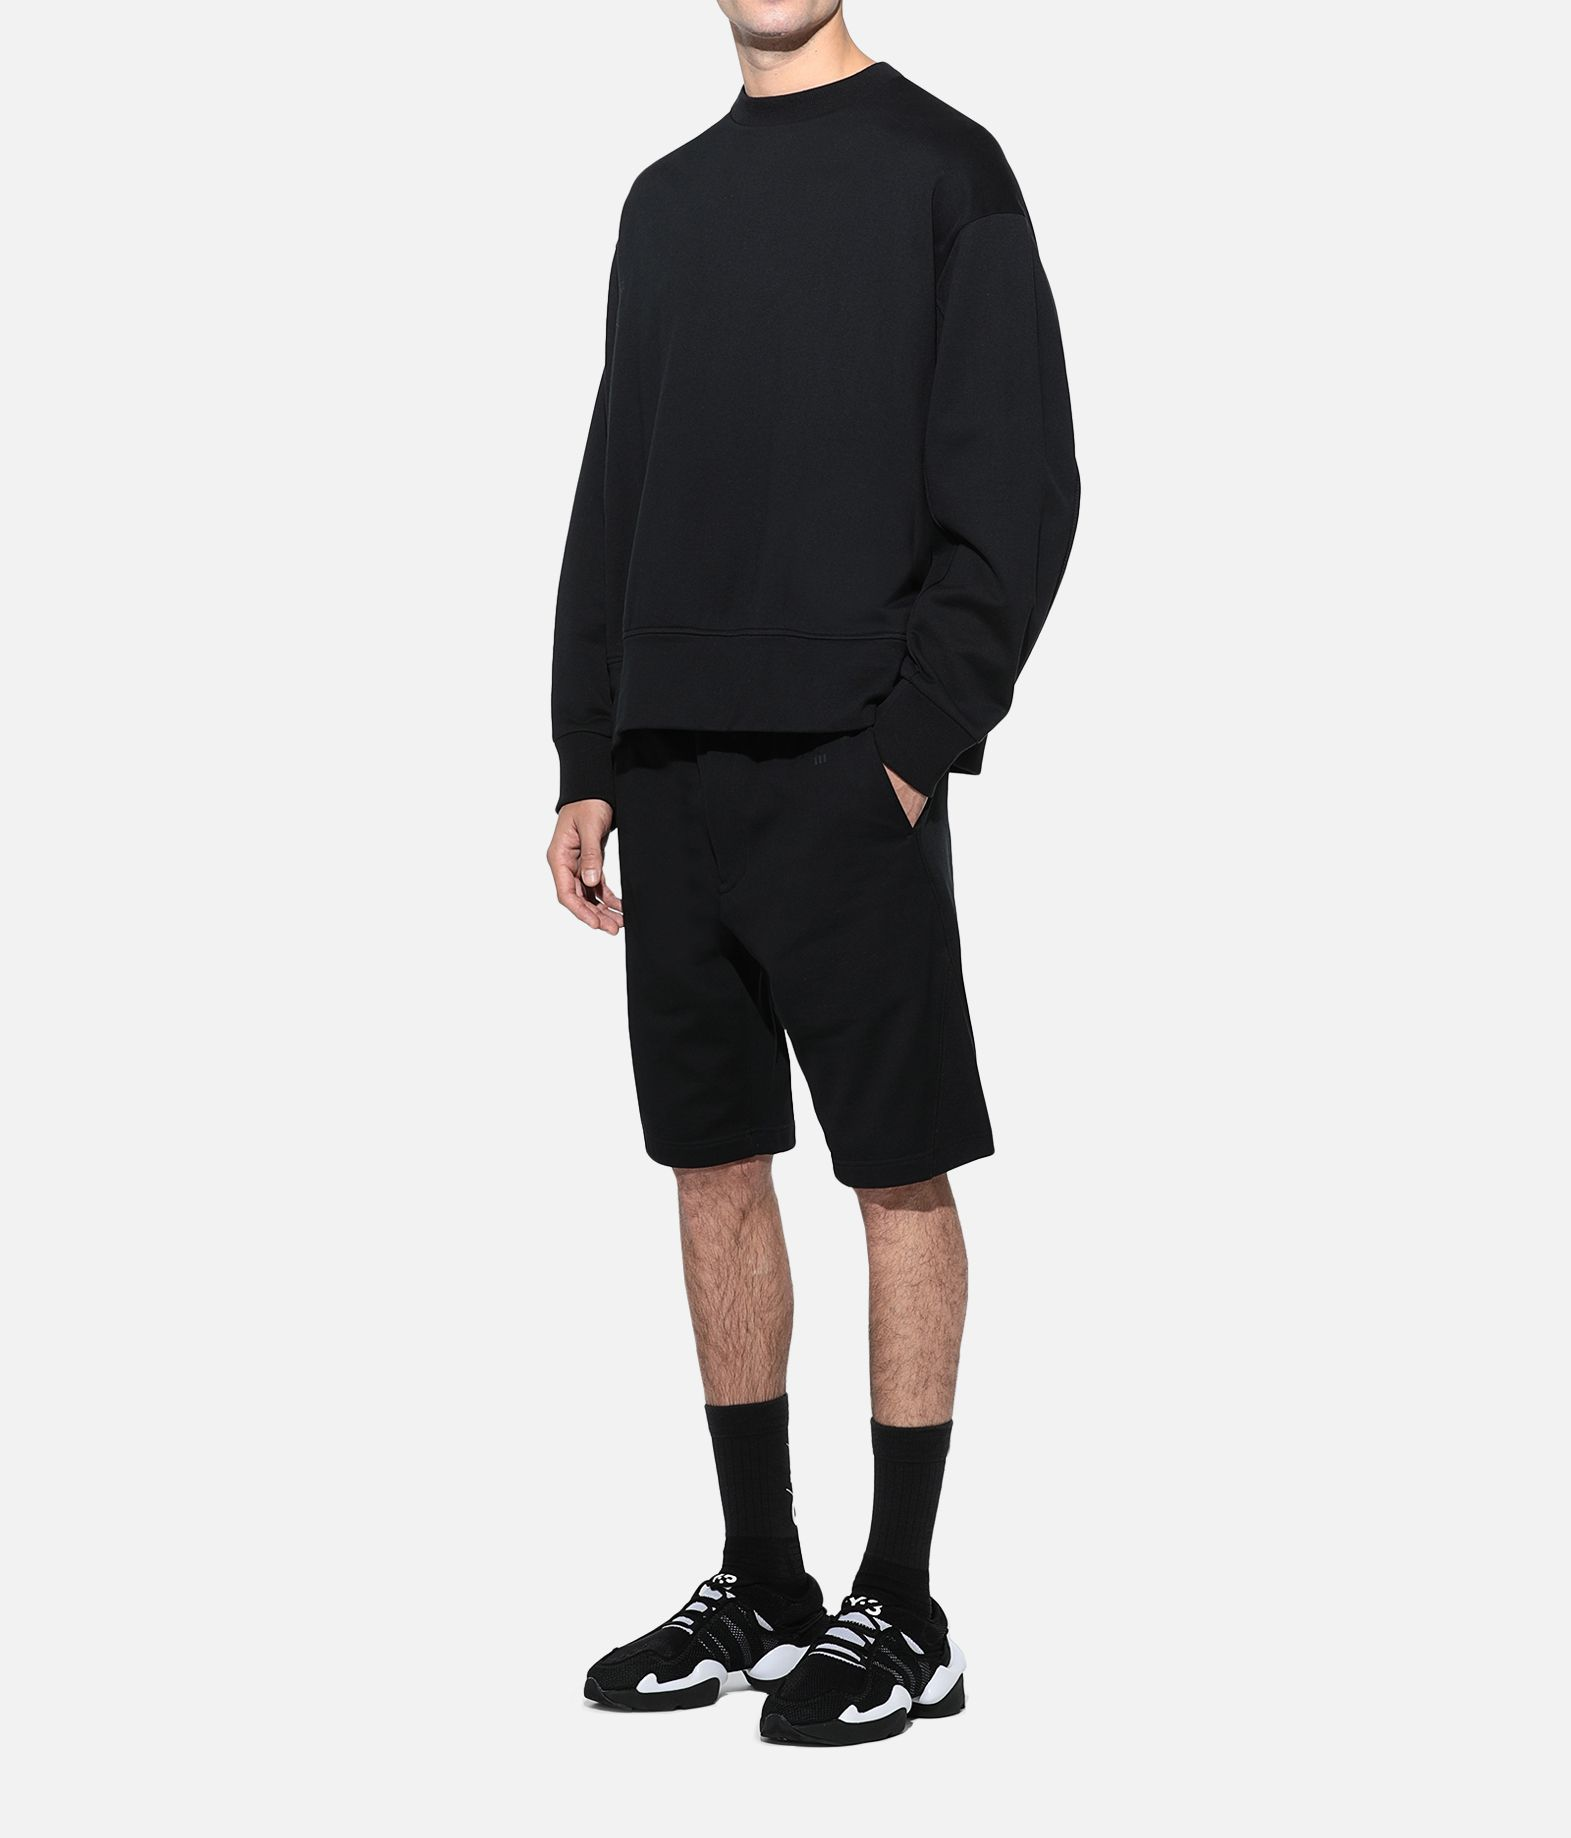 Y-3 Y-3 Signature Graphic Sweatshirt Sweatshirt Man a